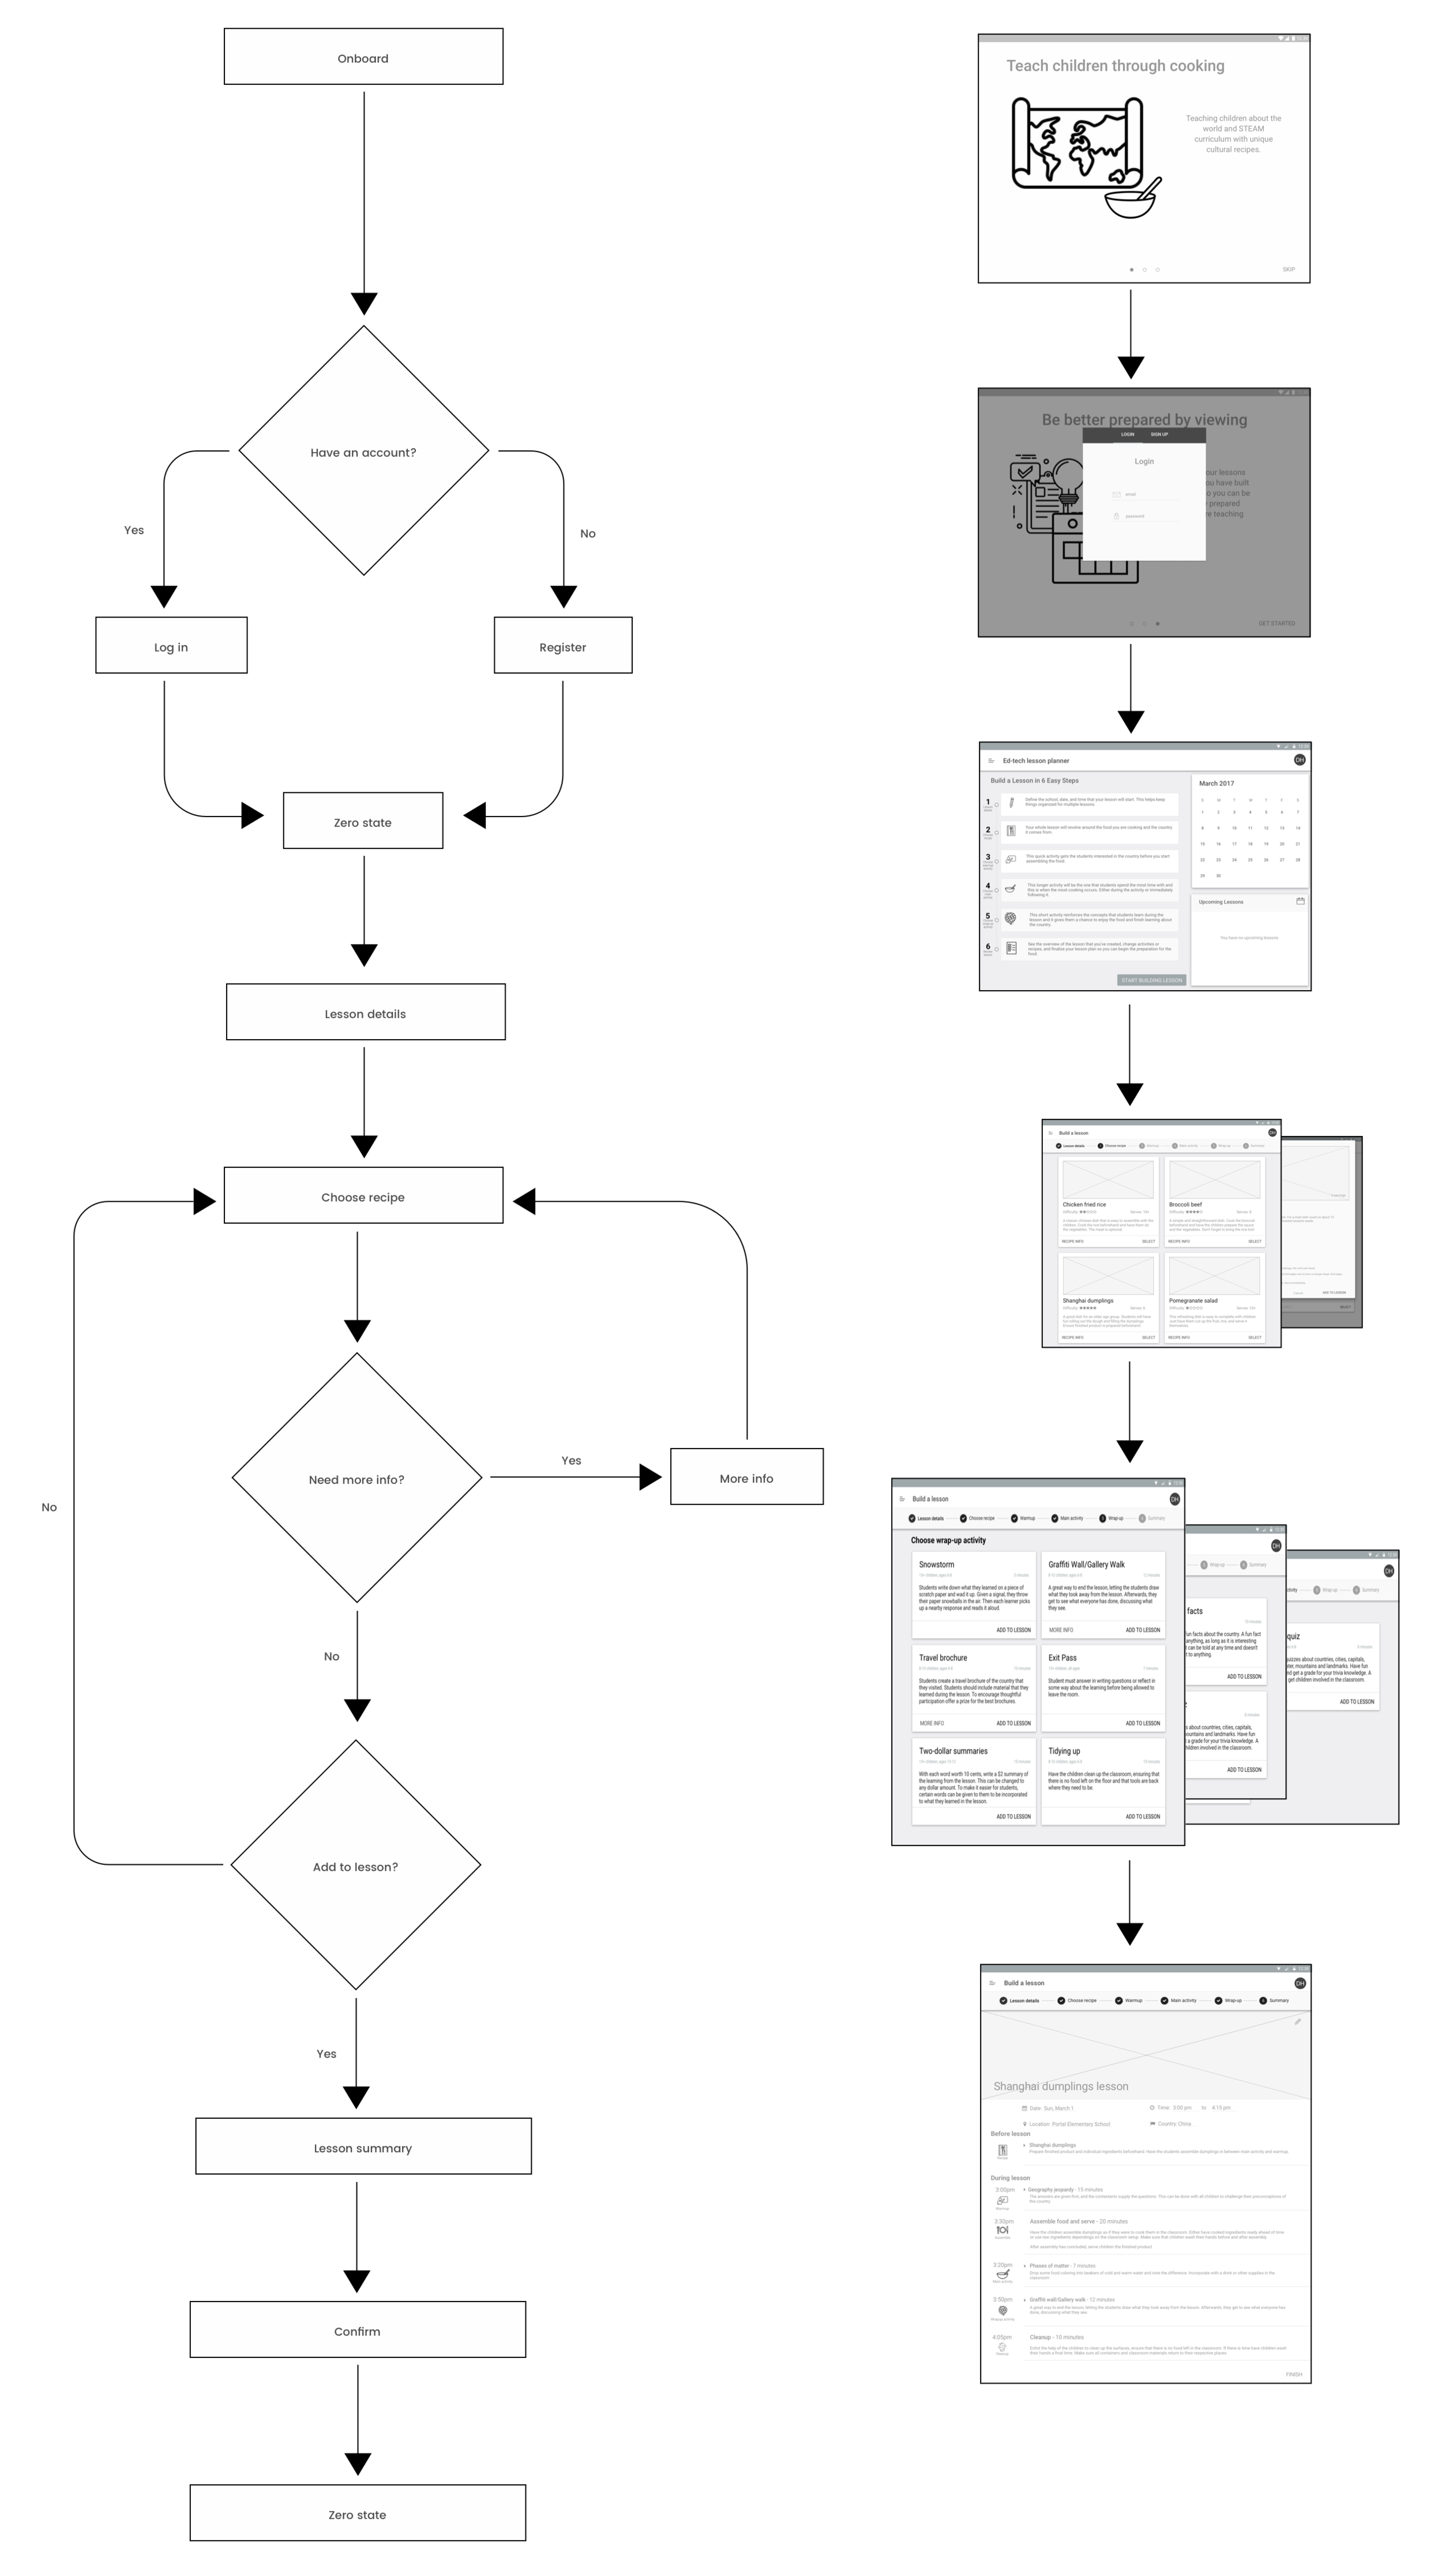 A user flow that helps teachers  budget time quickly and efficiently.